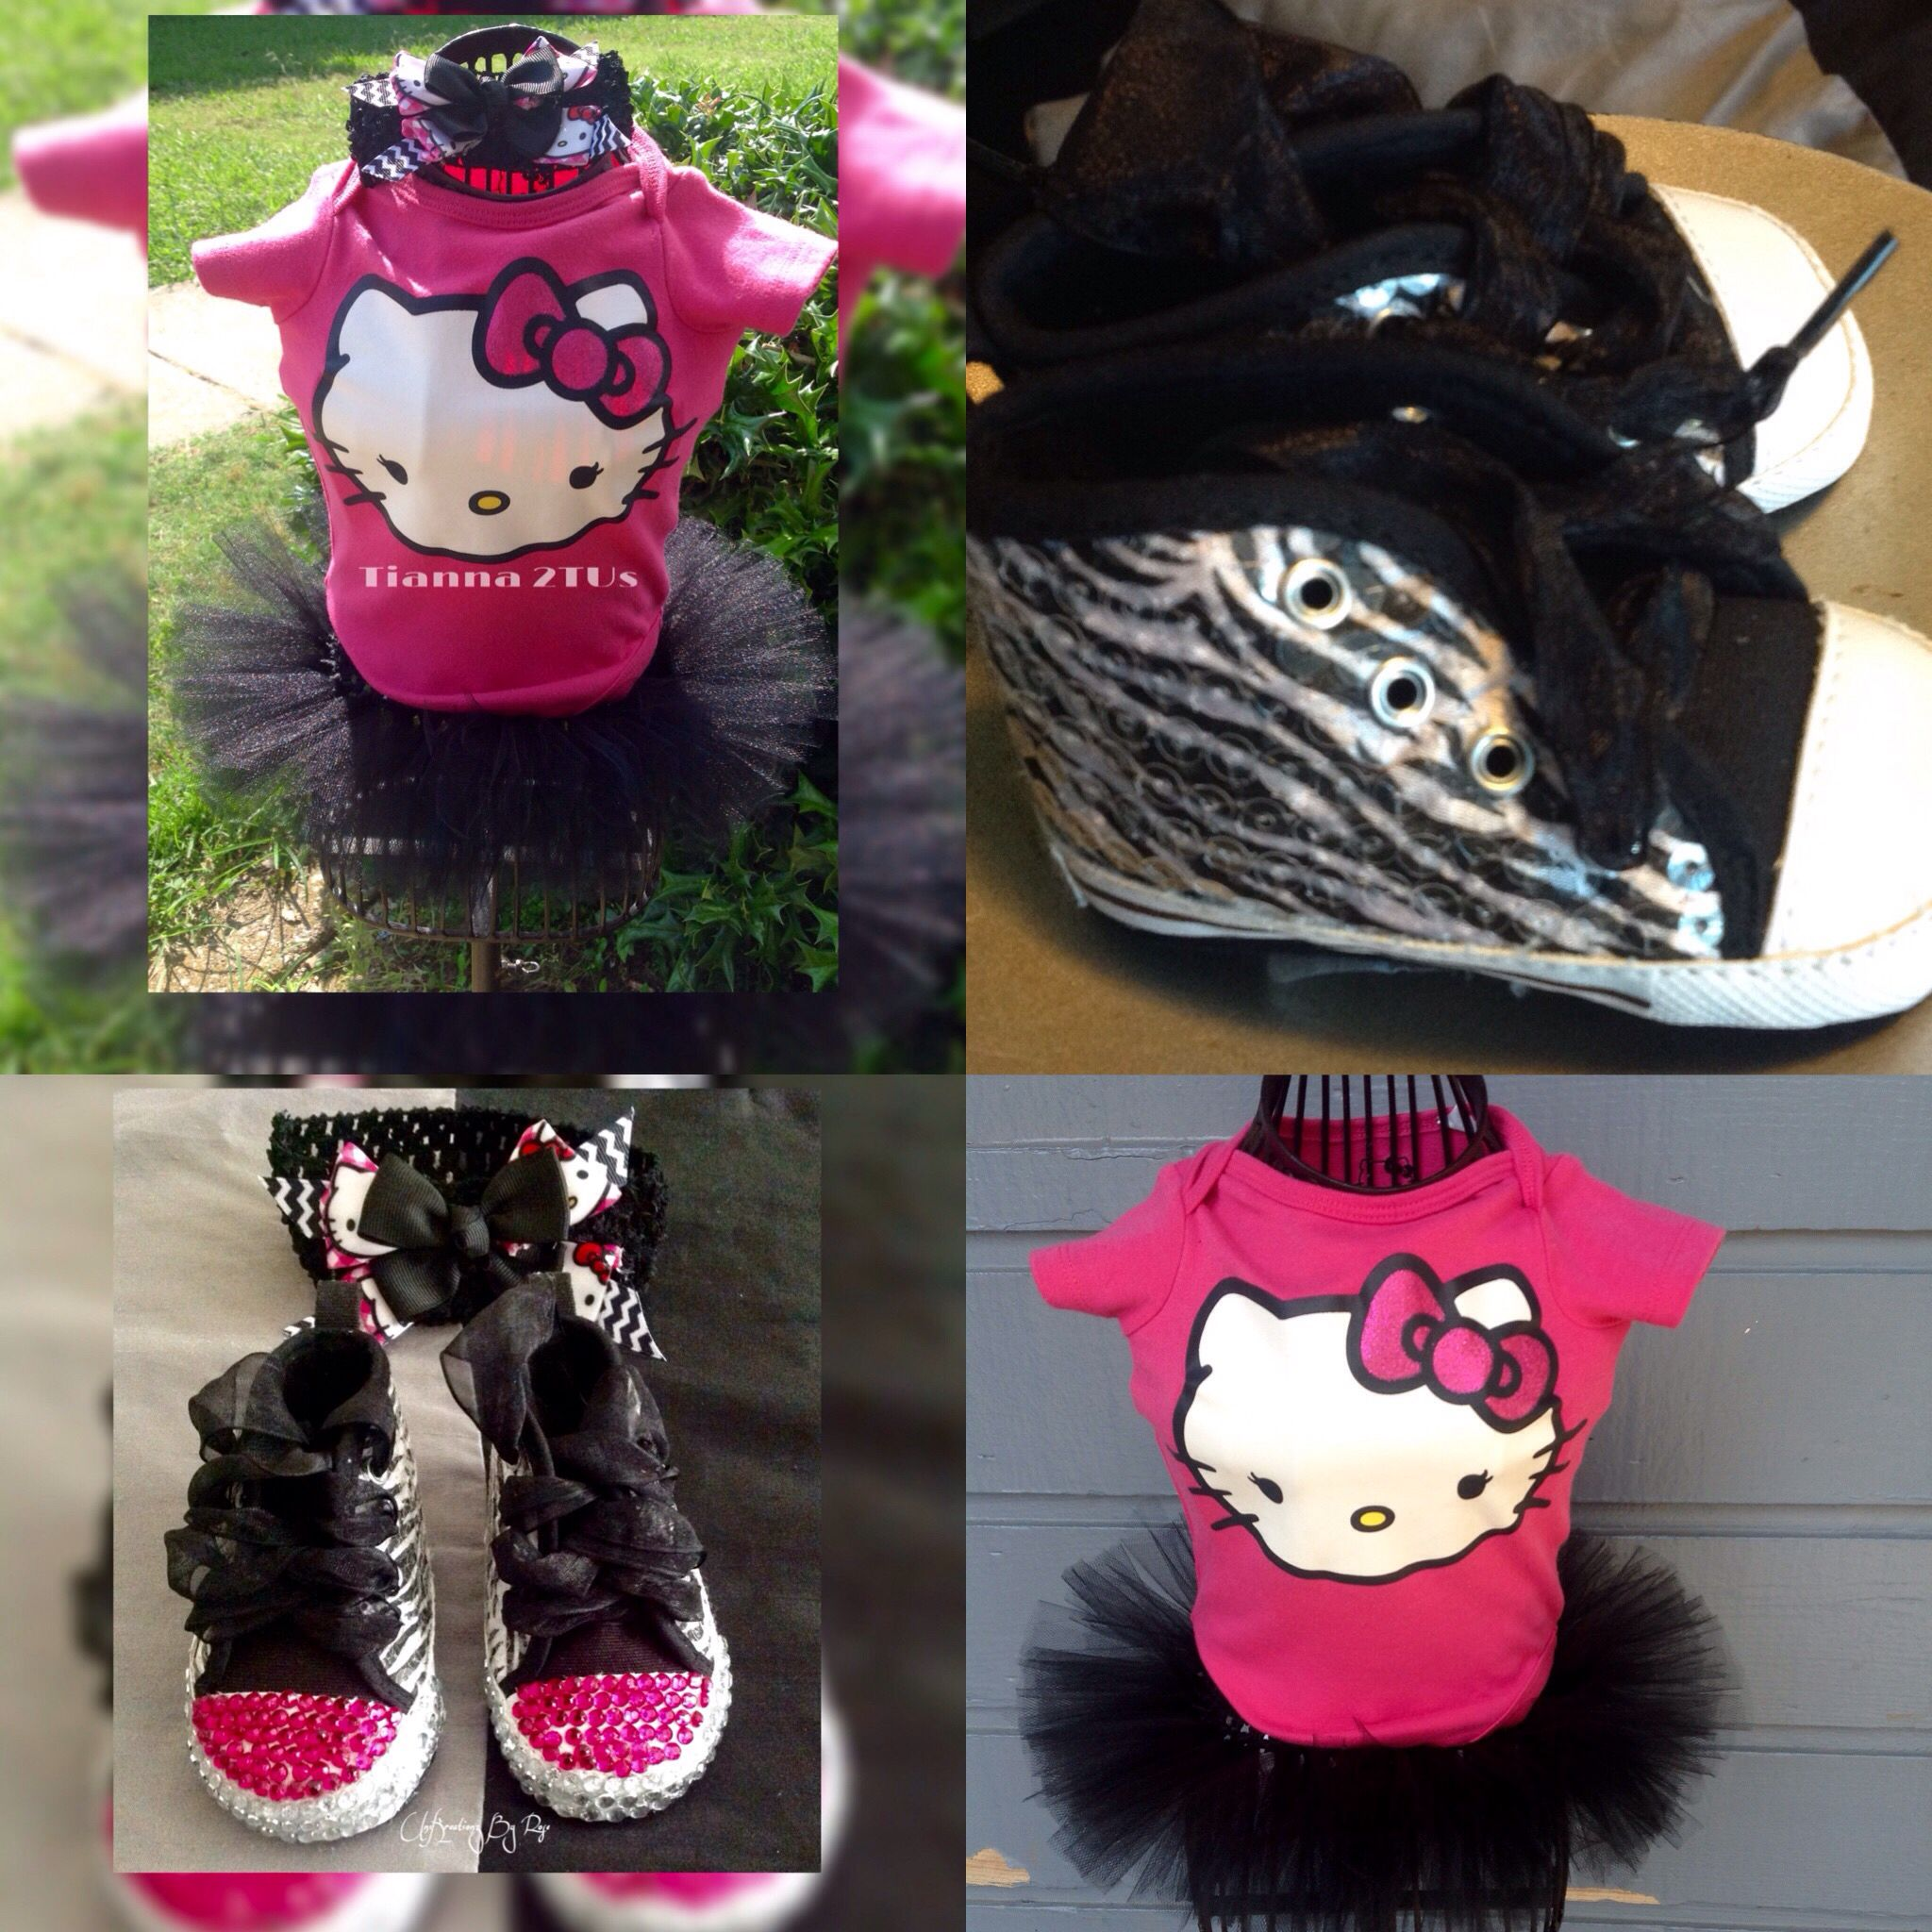 Hello Kitty 2tu Set With Matching Shoes And Hairbow With